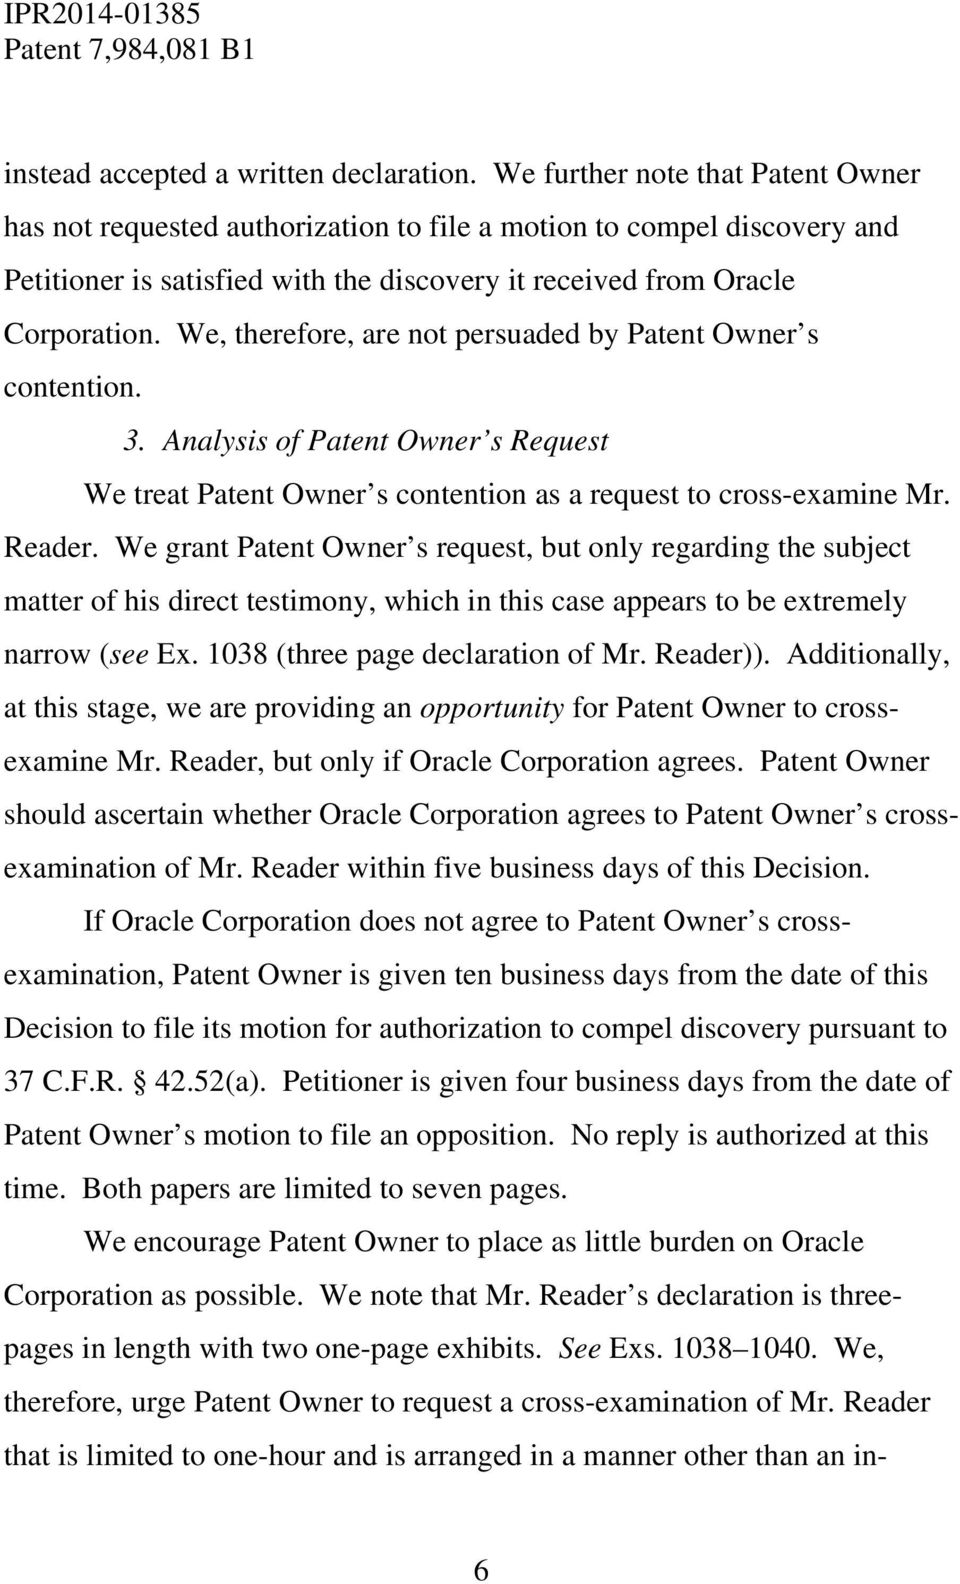 We, therefore, are not persuaded by Patent Owner s contention. 3. Analysis of Patent Owner s Request We treat Patent Owner s contention as a request to cross-examine Mr. Reader.